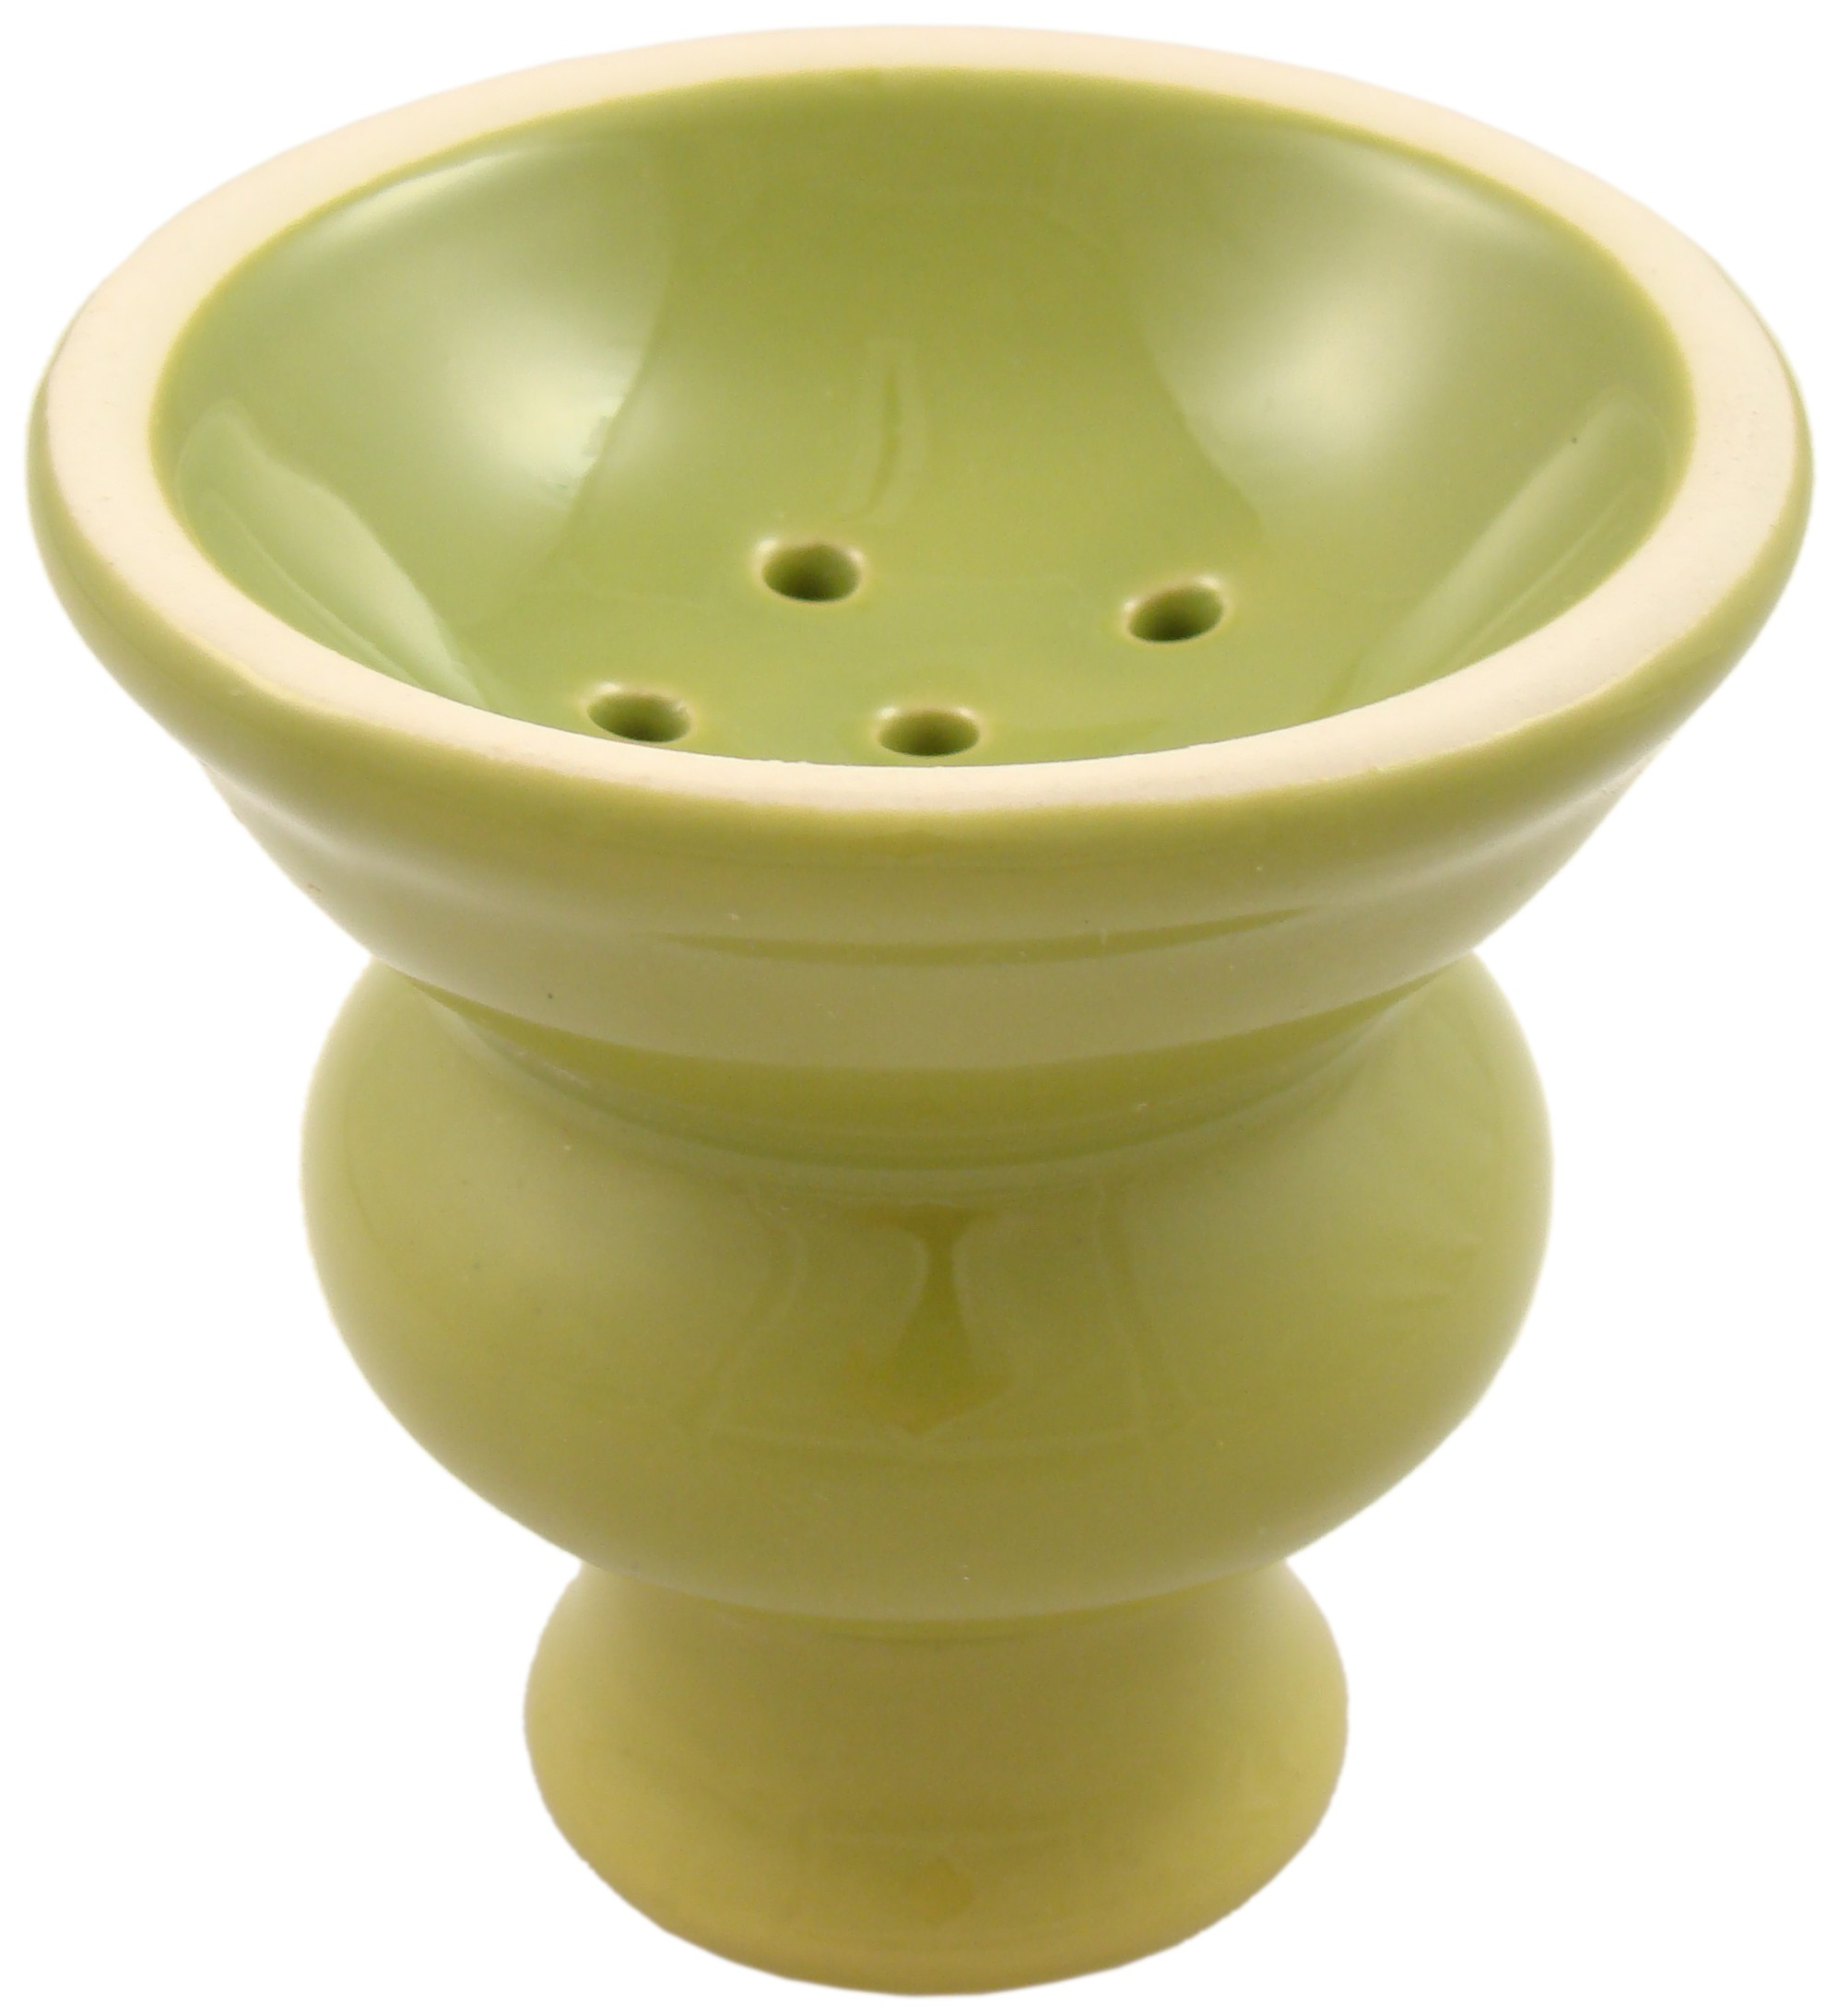 HKB06 - Large Tobacco Hookah Bowl